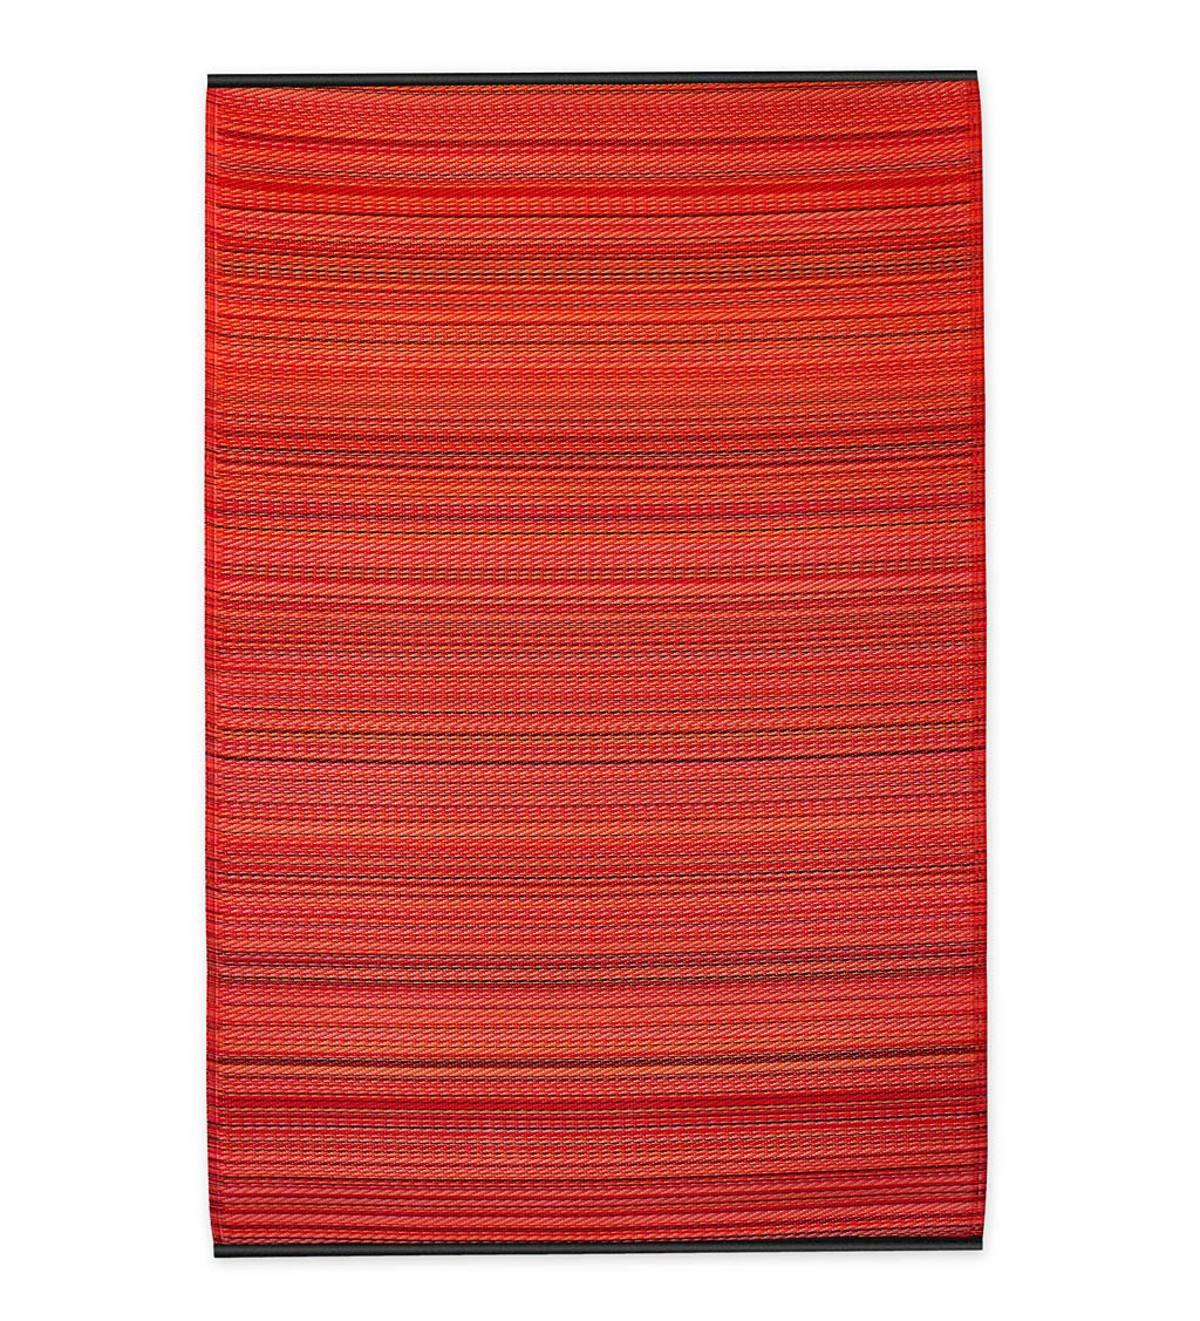 Reversible&Recycled Indoor/Outdoor Rug Cancun Style - 8x10 - Sunset